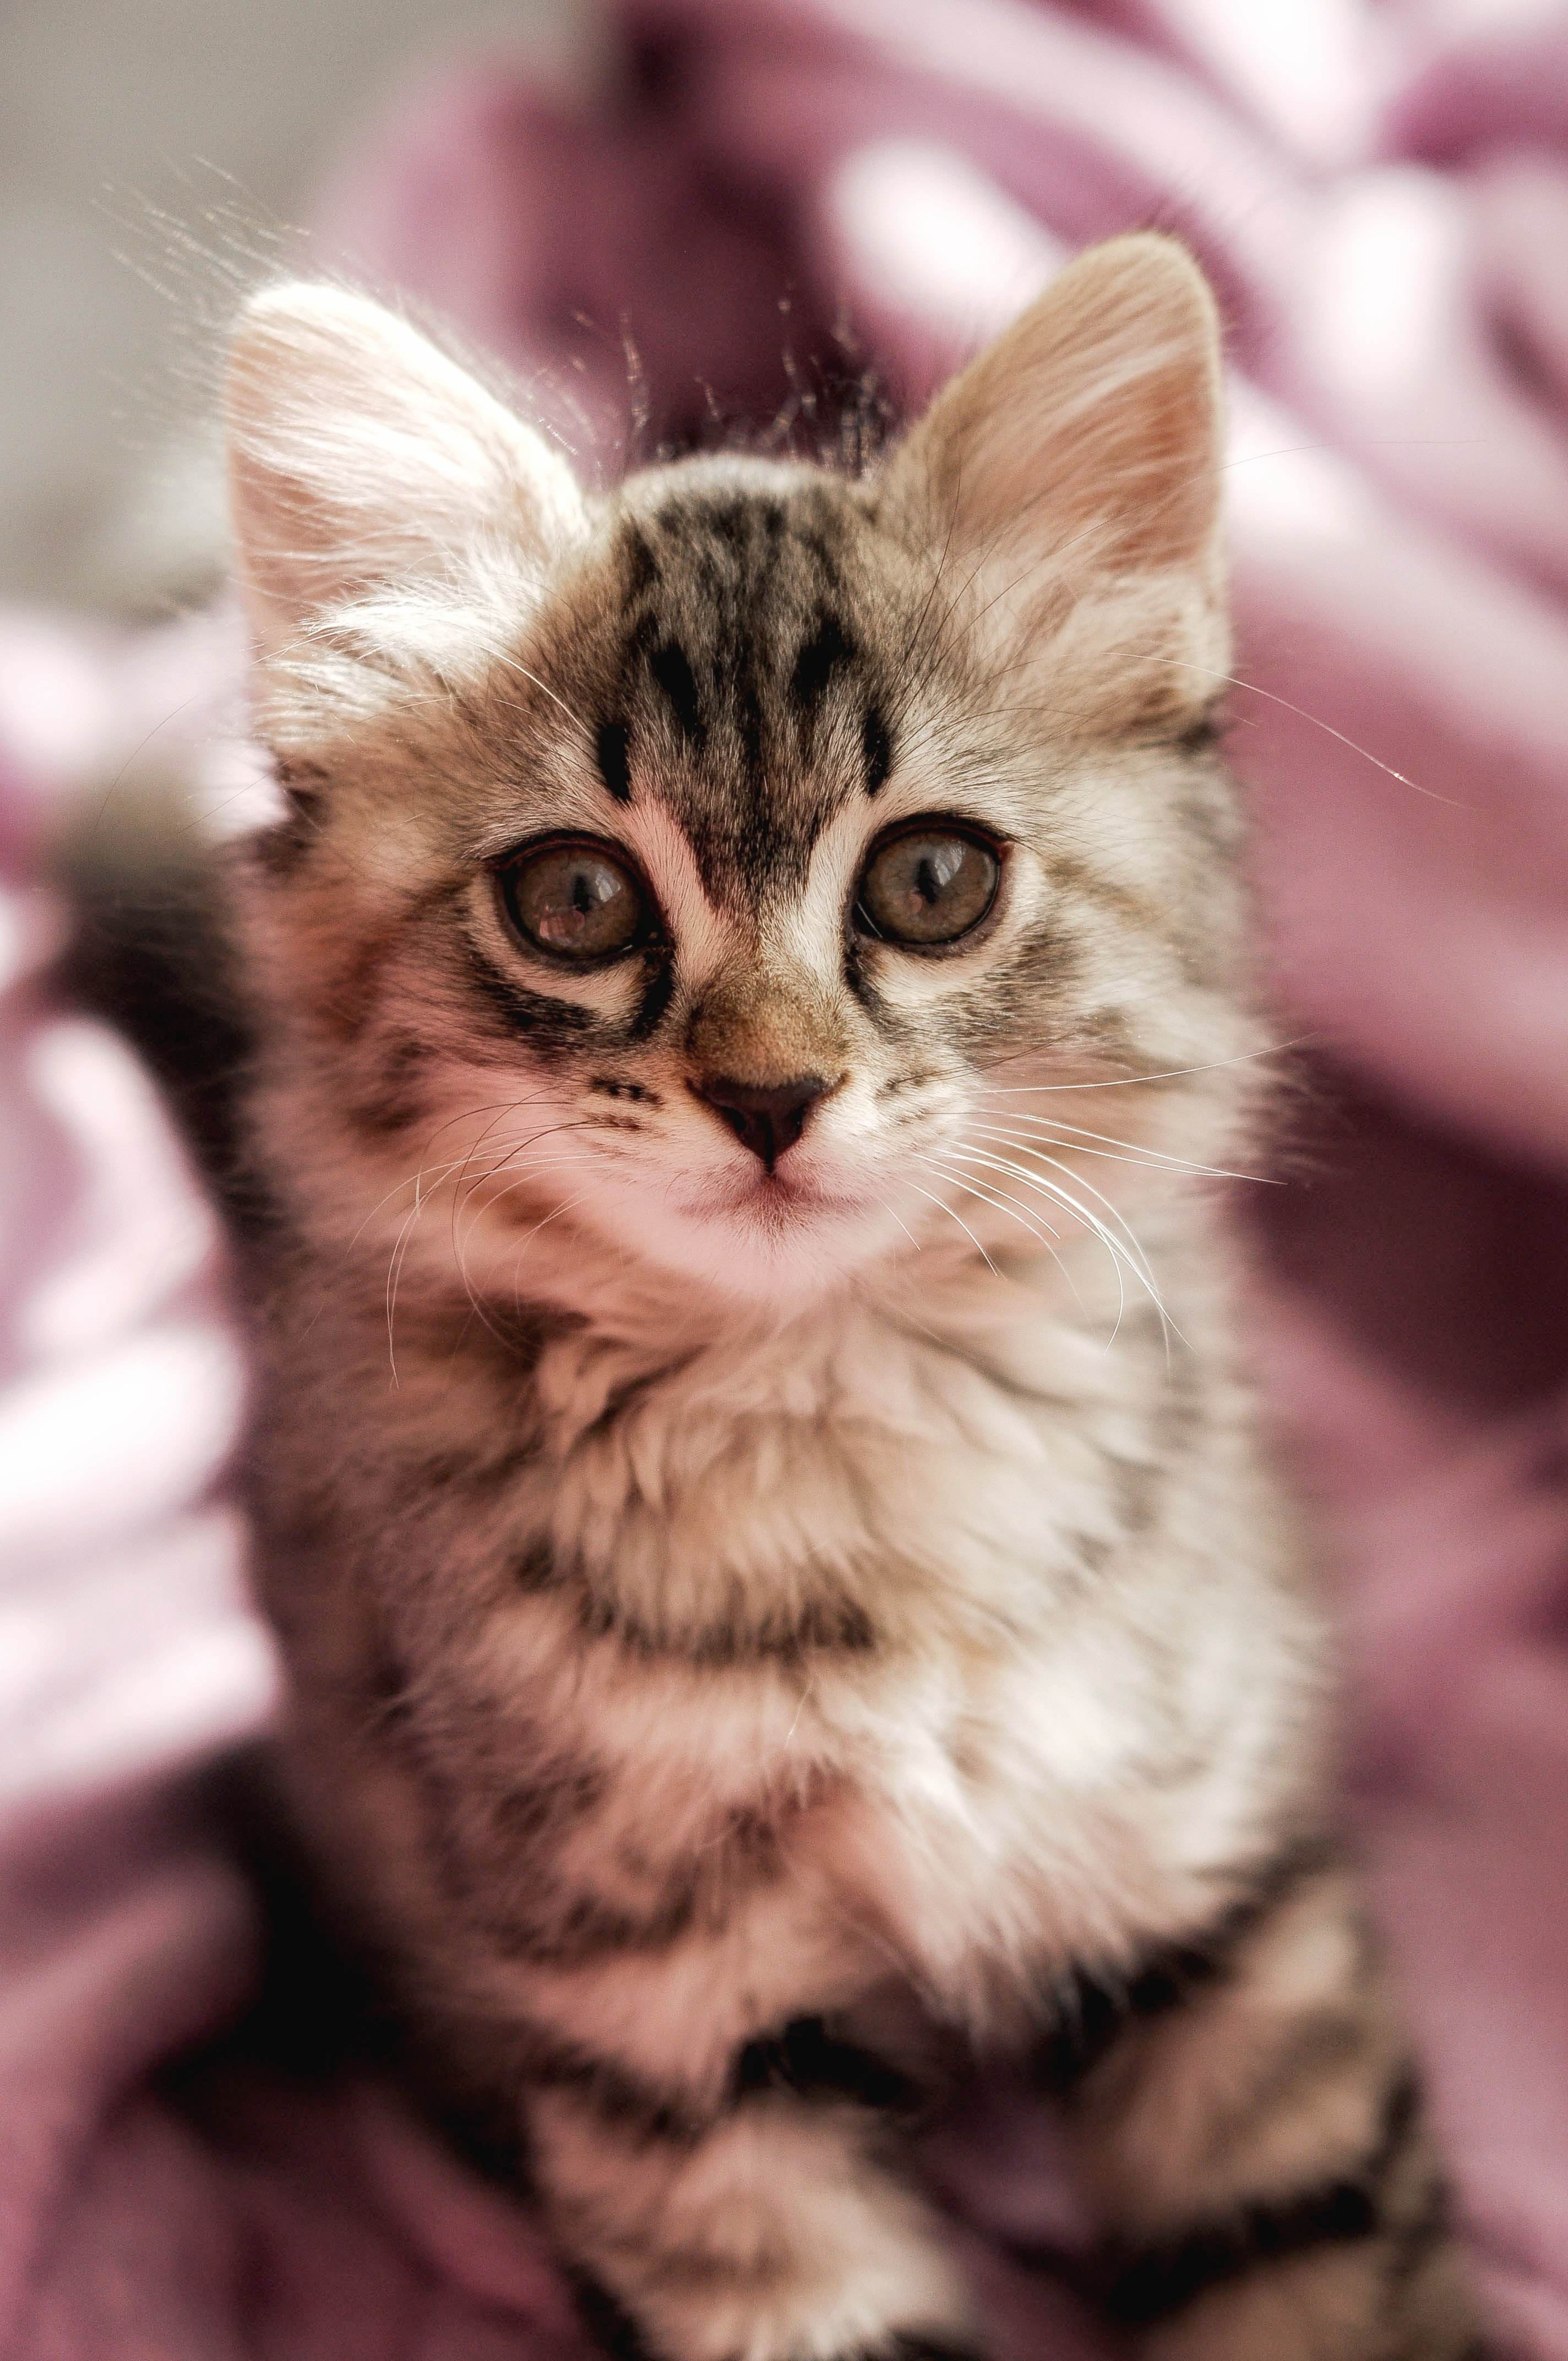 66958 download wallpaper Animals, Cat, Kitty, Kitten, Pet, Sight, Opinion, Nice, Sweetheart, Fluffy screensavers and pictures for free